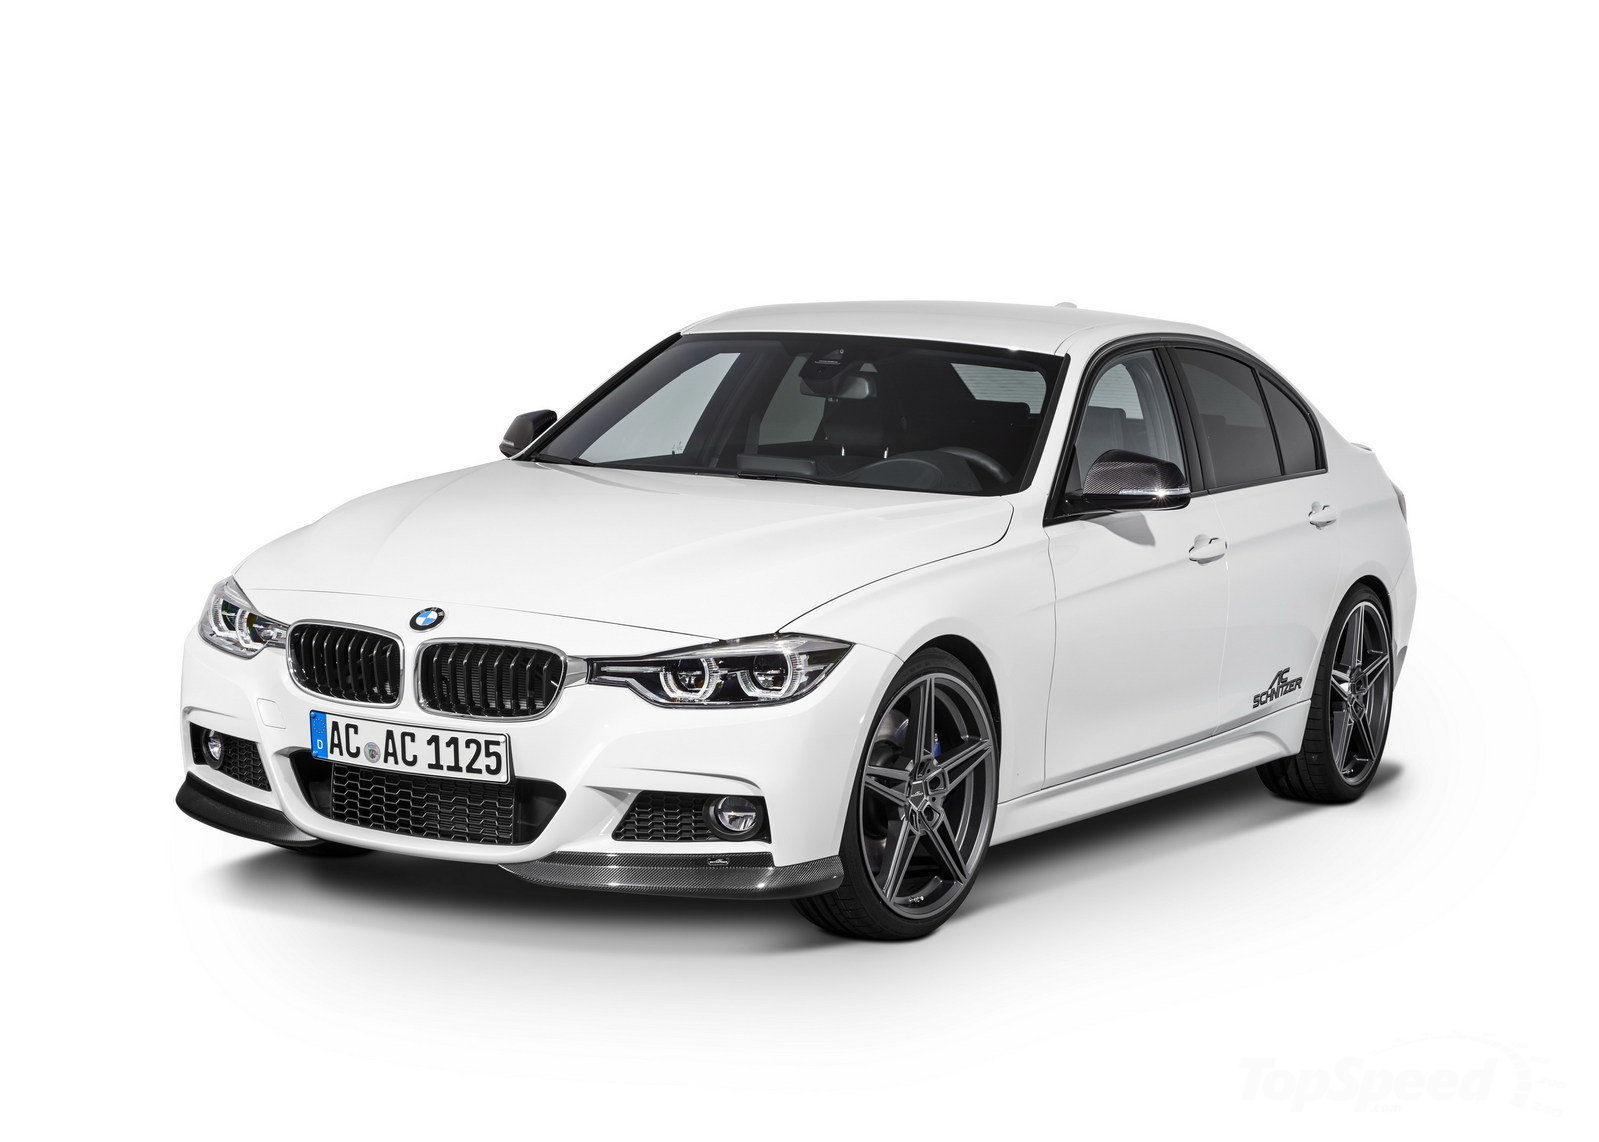 Bmw North America >> 2016 BMW 3 Series Facelift gets the AC Schnitzer treatment